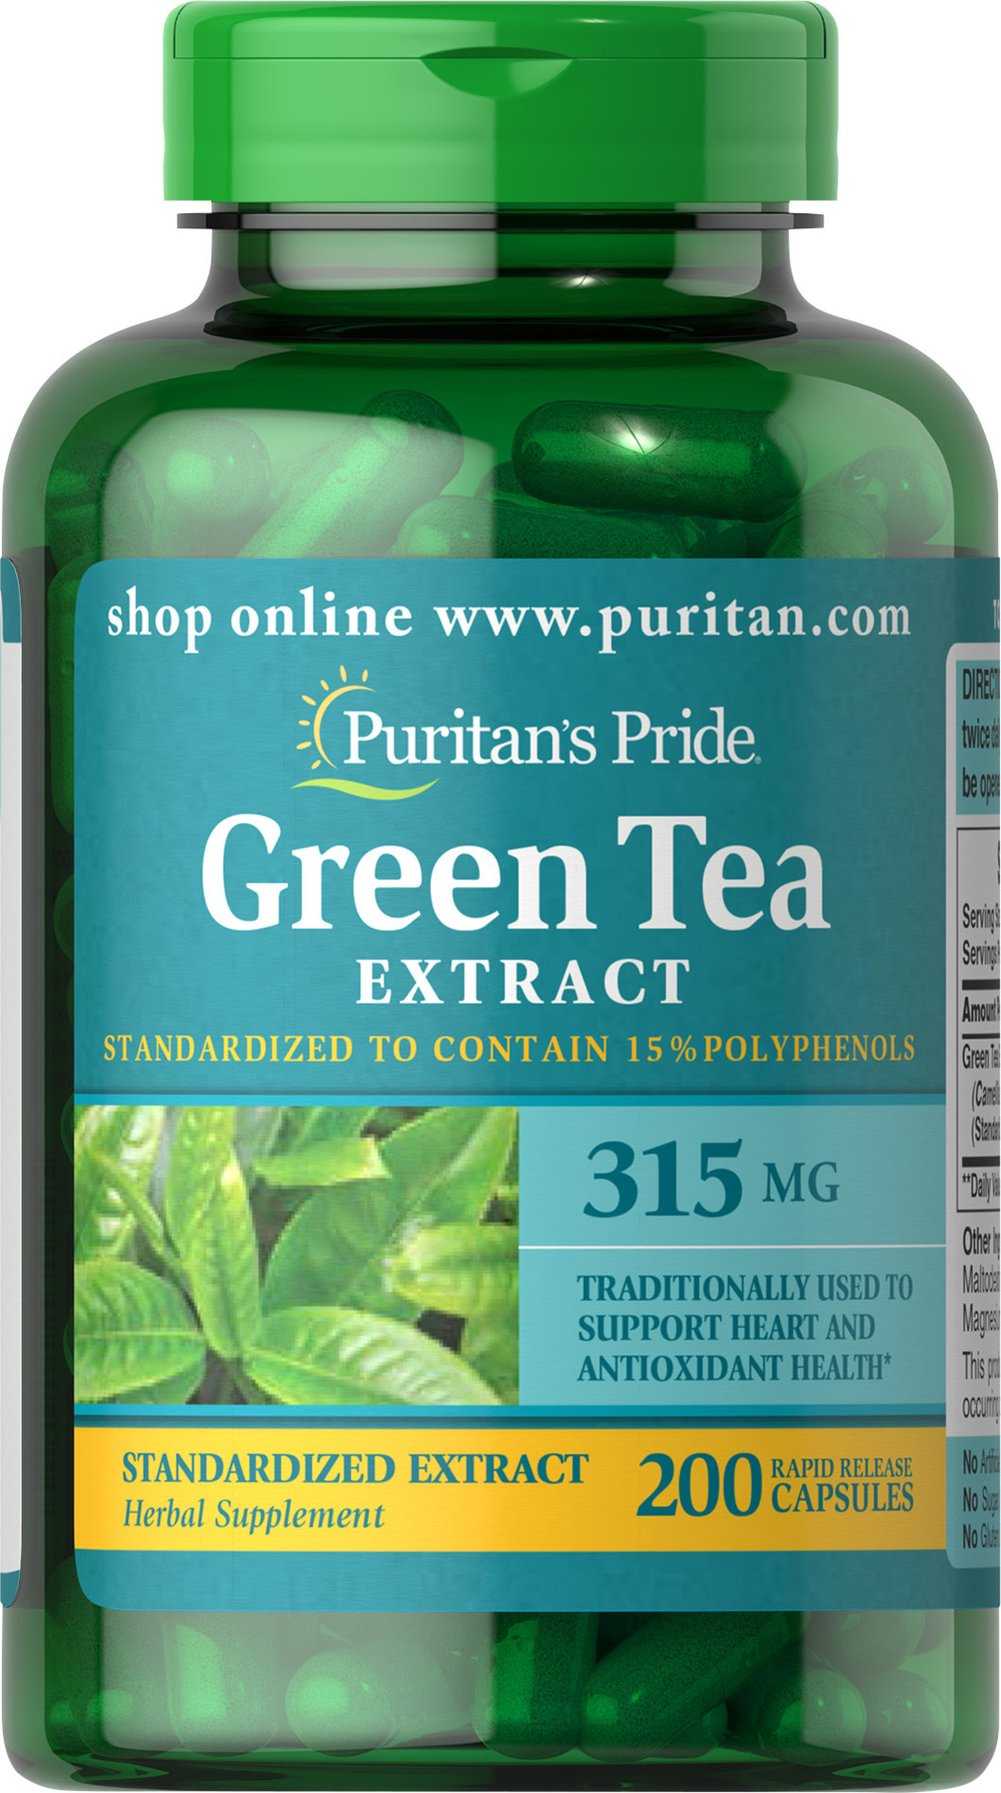 "Green Tea Standardized Extract 315 mg <p>Green Tea is a nutritional staple in Japan where it has been used for centuries. Green Tea contains beneficial flavonoids, which are natural phytochemicals that provide antioxidant support and health-enhancing properties.** Our ""non-irradiated"" Green Tea Extract contains naturally occurring EGCG.</p><p> Adults can take two capsules twice daily with meals. Capsules may be opened and prepared as a tea.</p> 200 Capsules 315"